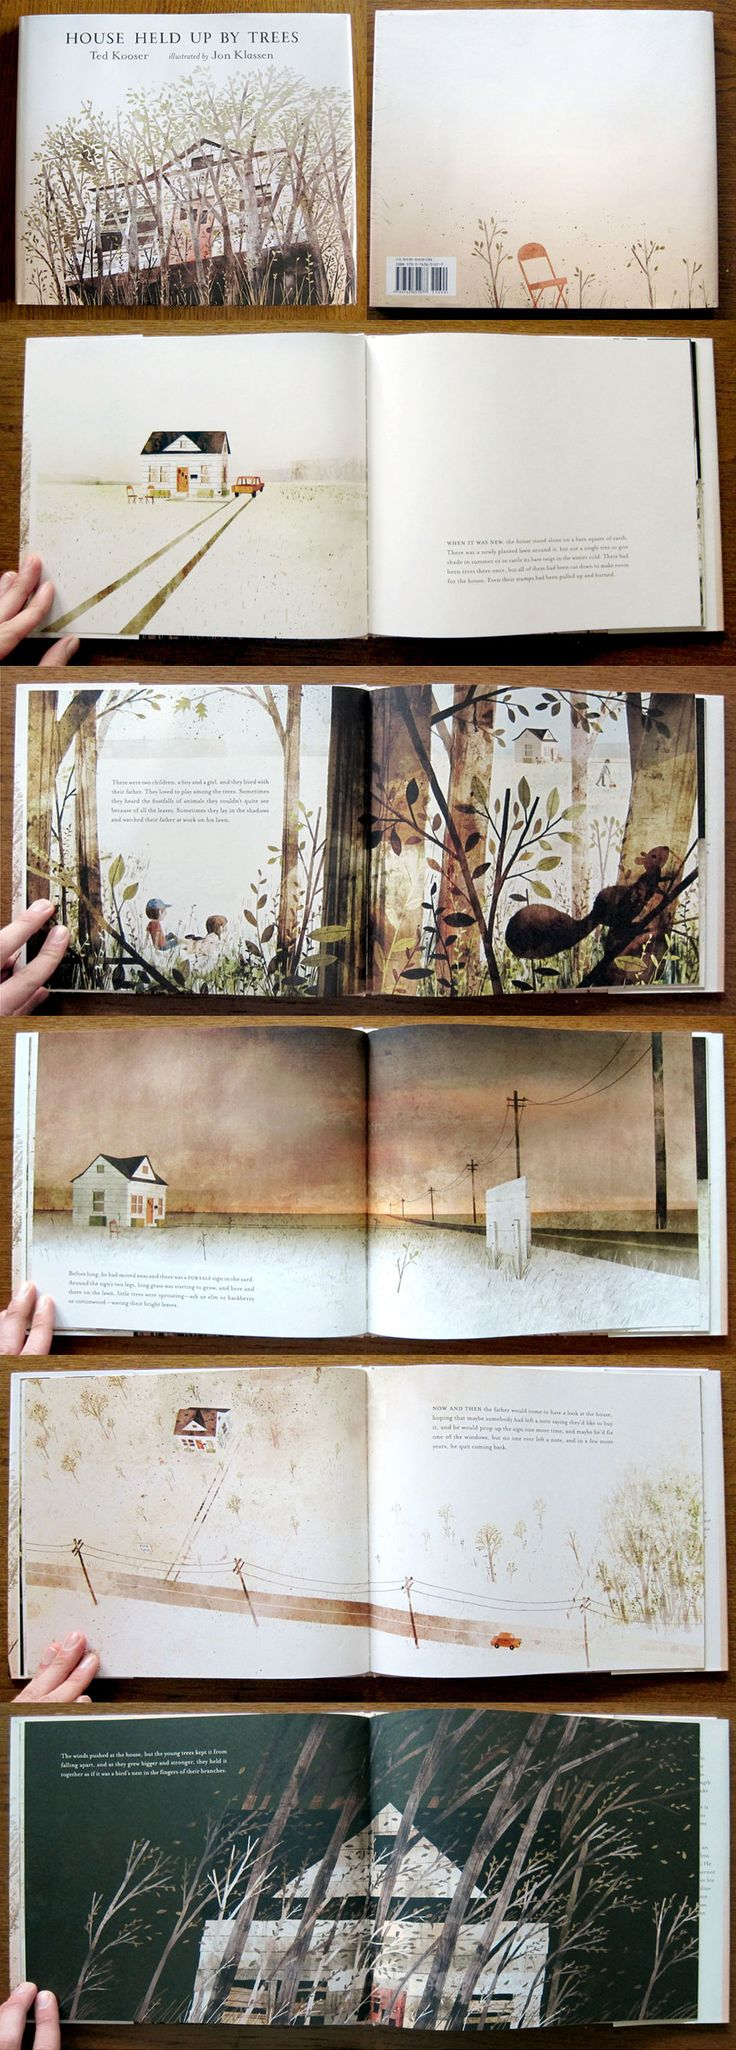 House Held Up By Trees by Ted Kooser, illustrated by Jon Klassen. Candlewick, 2012.